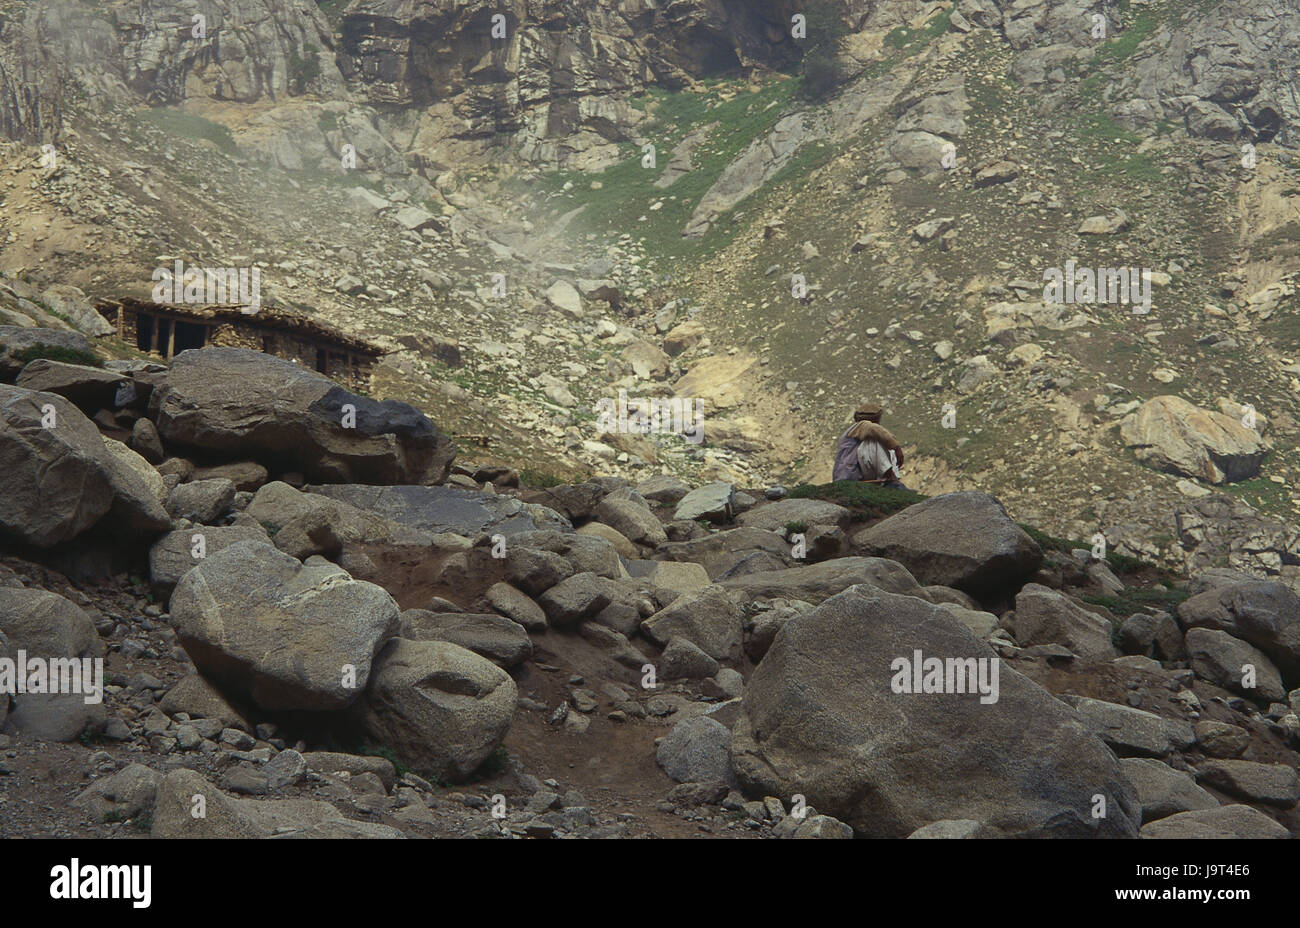 Pakistan,Chitral,mountain landscape,rock,man,sit,no model release,Asia,mountains,mountains,bile scenery,rocky,stony,local,people,only,loneliness,scanty,hopelessly,outside, - Stock Image